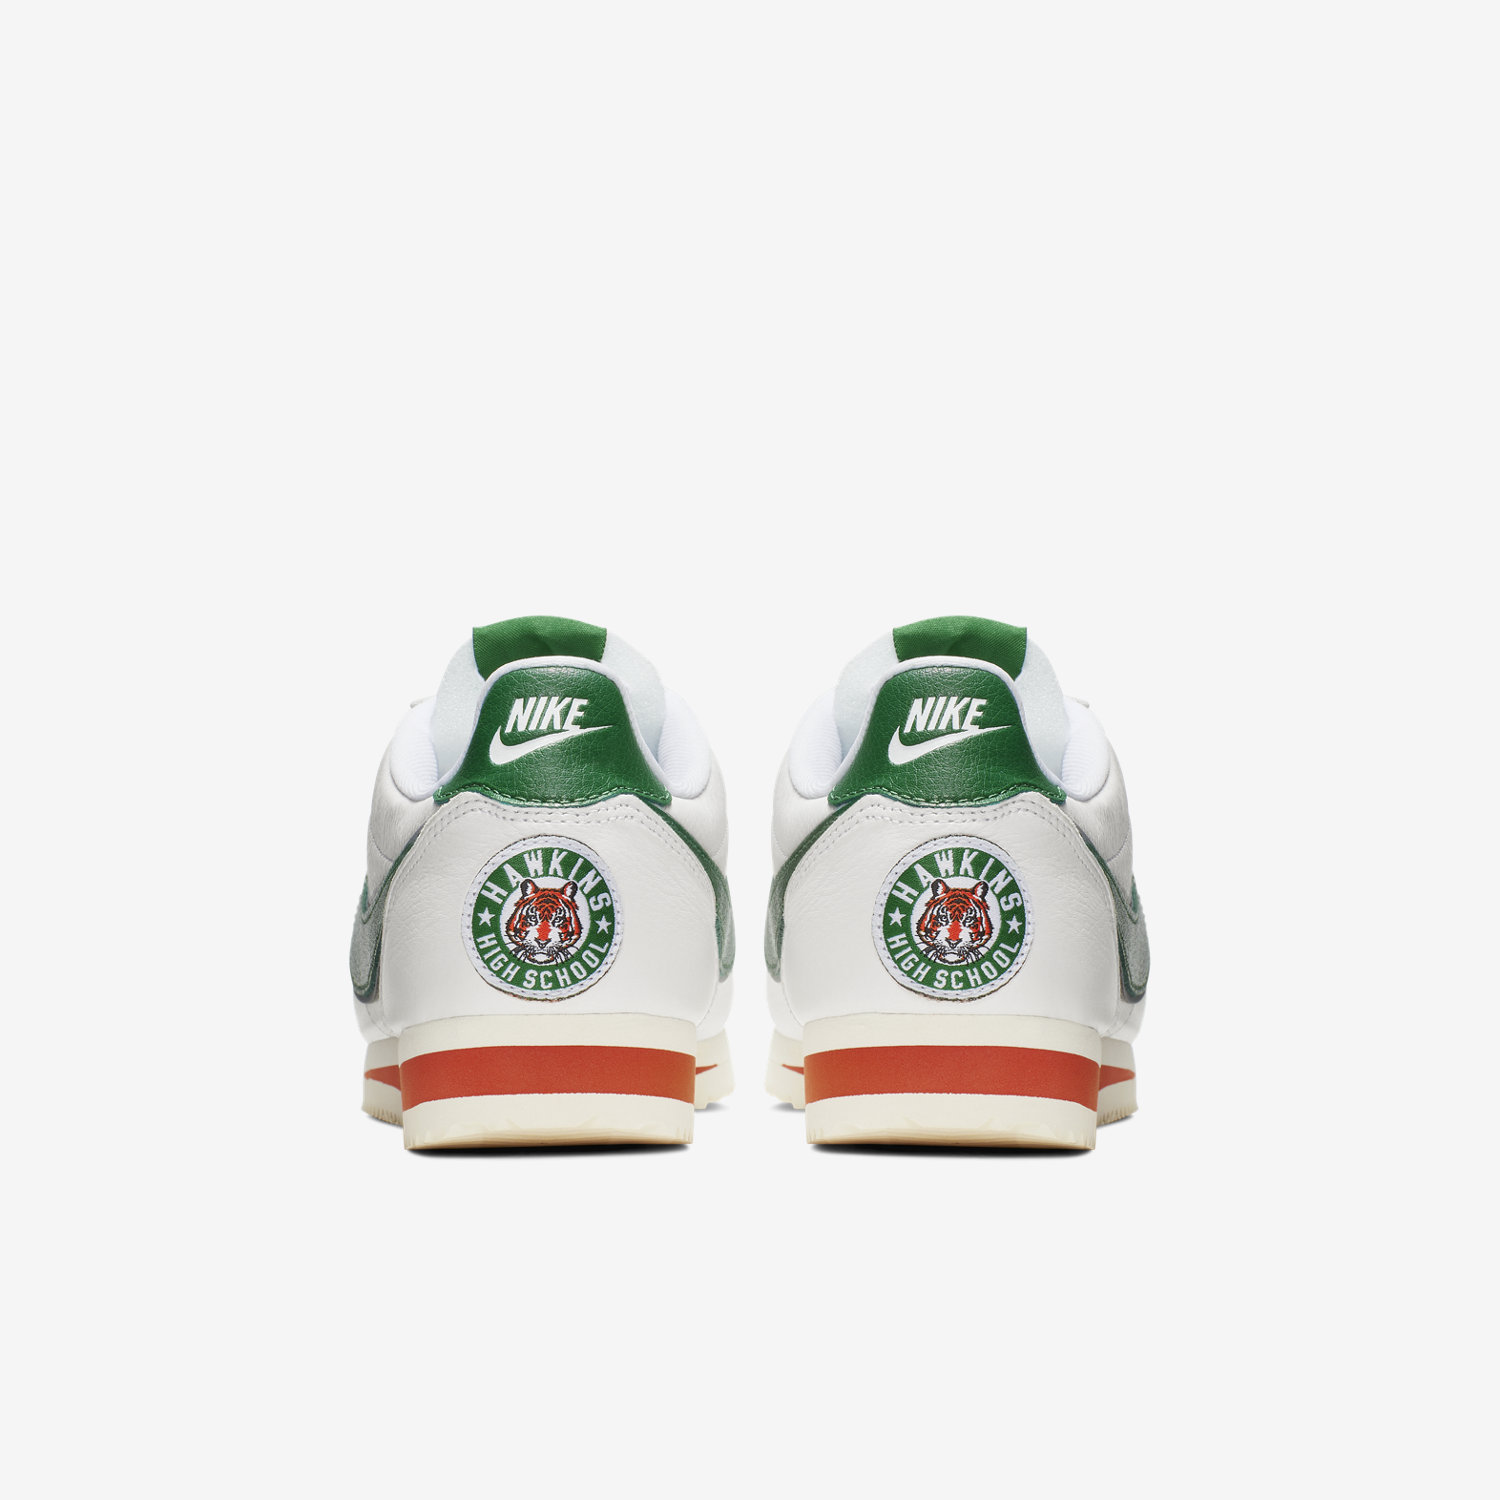 High Cortez X Nike Hawkins Homme Pour Chaussure nmN0Oyvw8